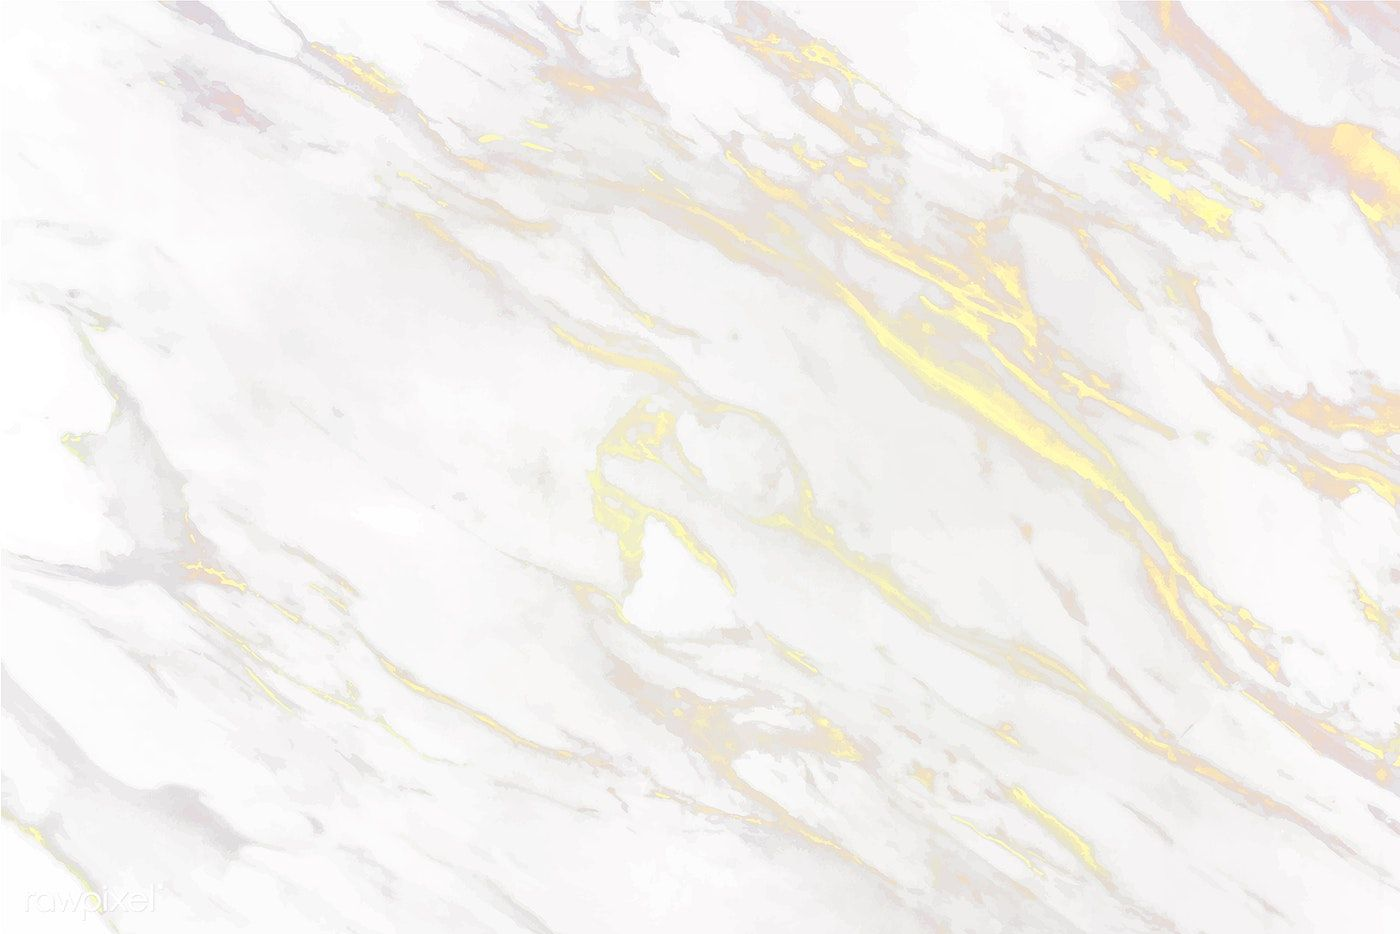 Download premium vector of Close up of white marble texture 1400x934